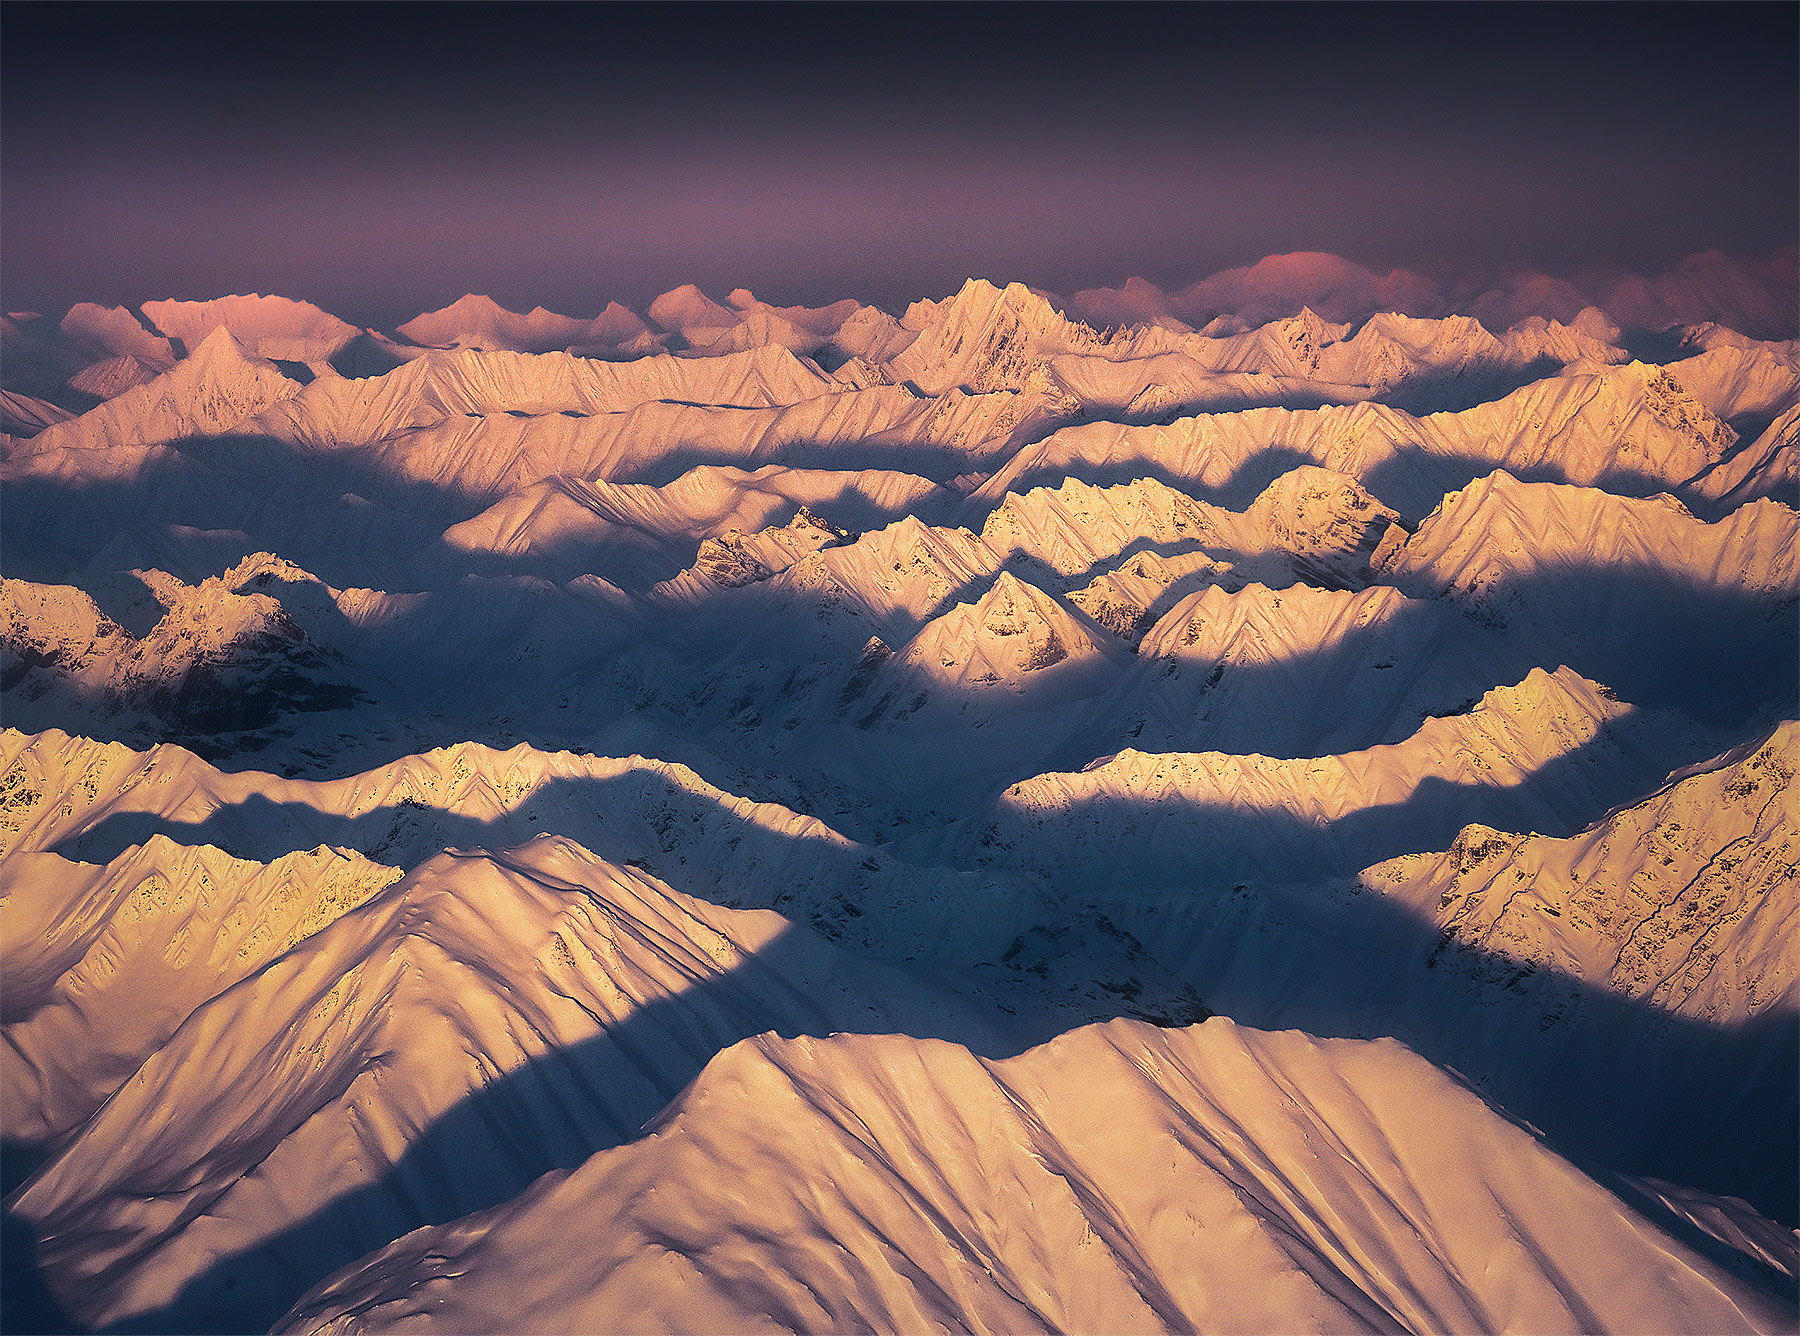 Endless layers of mountains at sunset from a bush plane over Denali National Park, Alaska